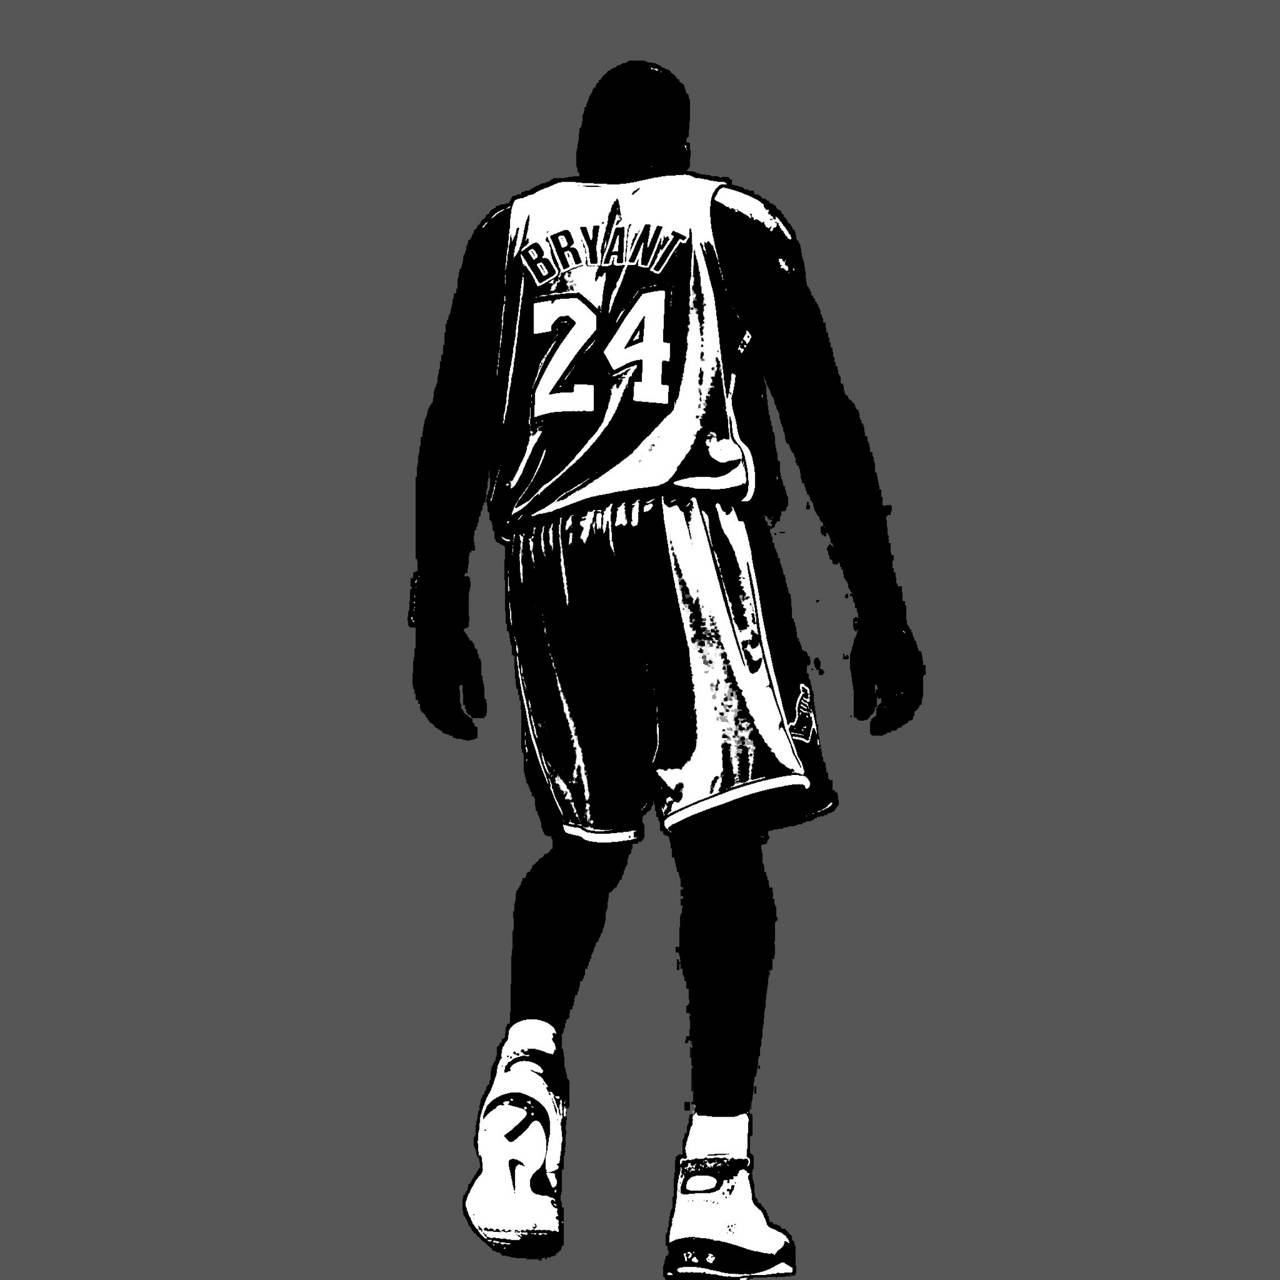 Kobe Bryant Wallpaper By Culturalcouple 1f Free On Zedge